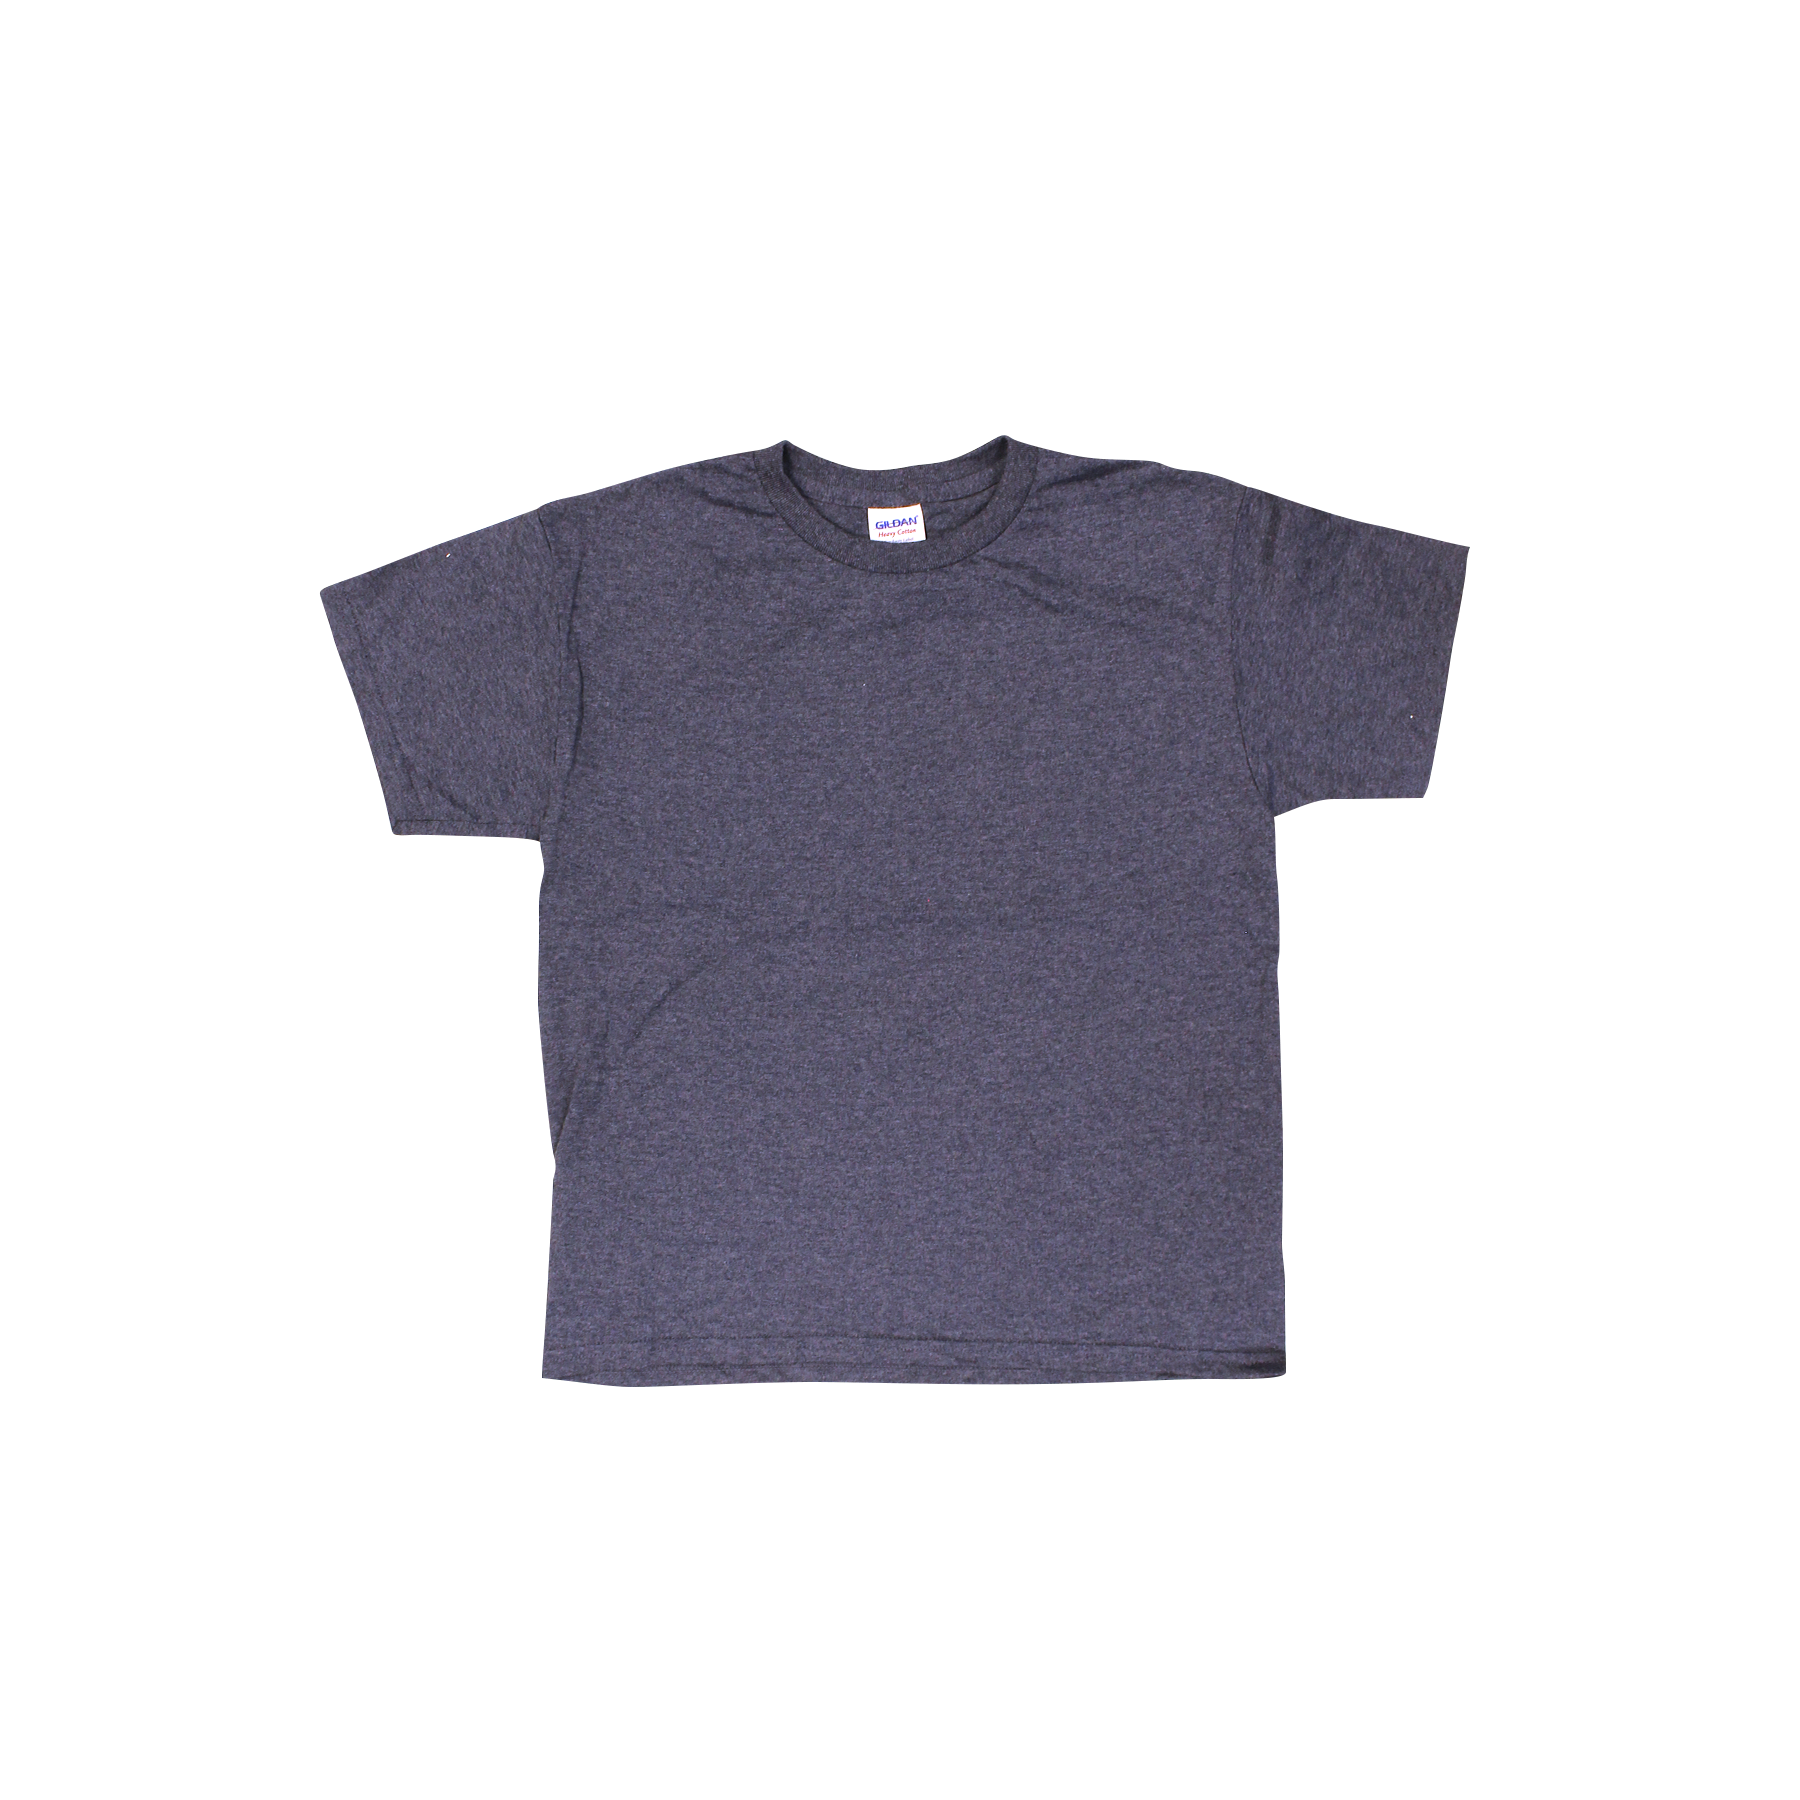 Navy Heather - Medium - Youth Clearance